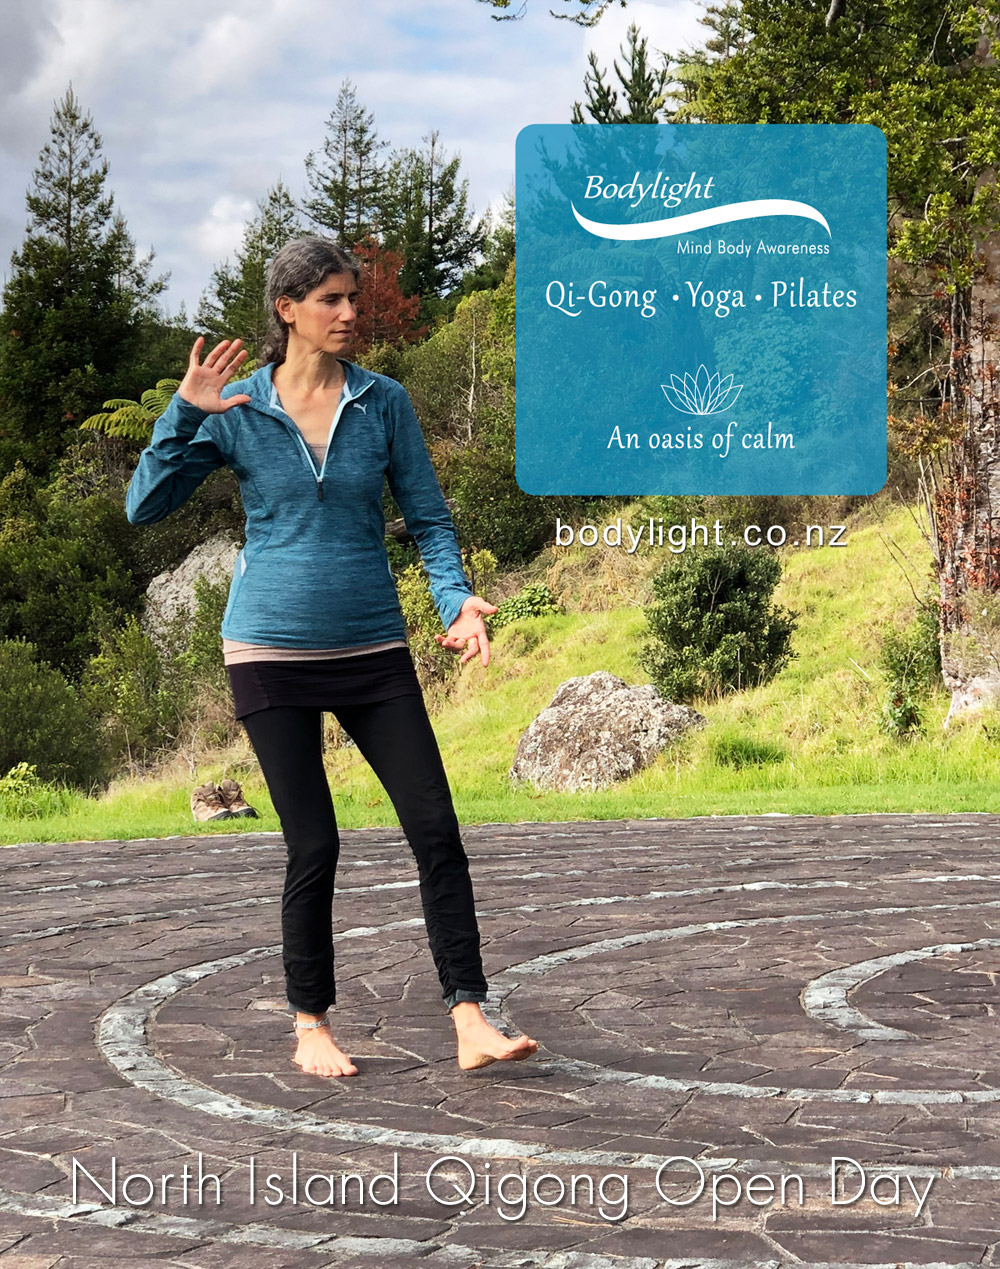 North Island Qigong Open Day Auckland